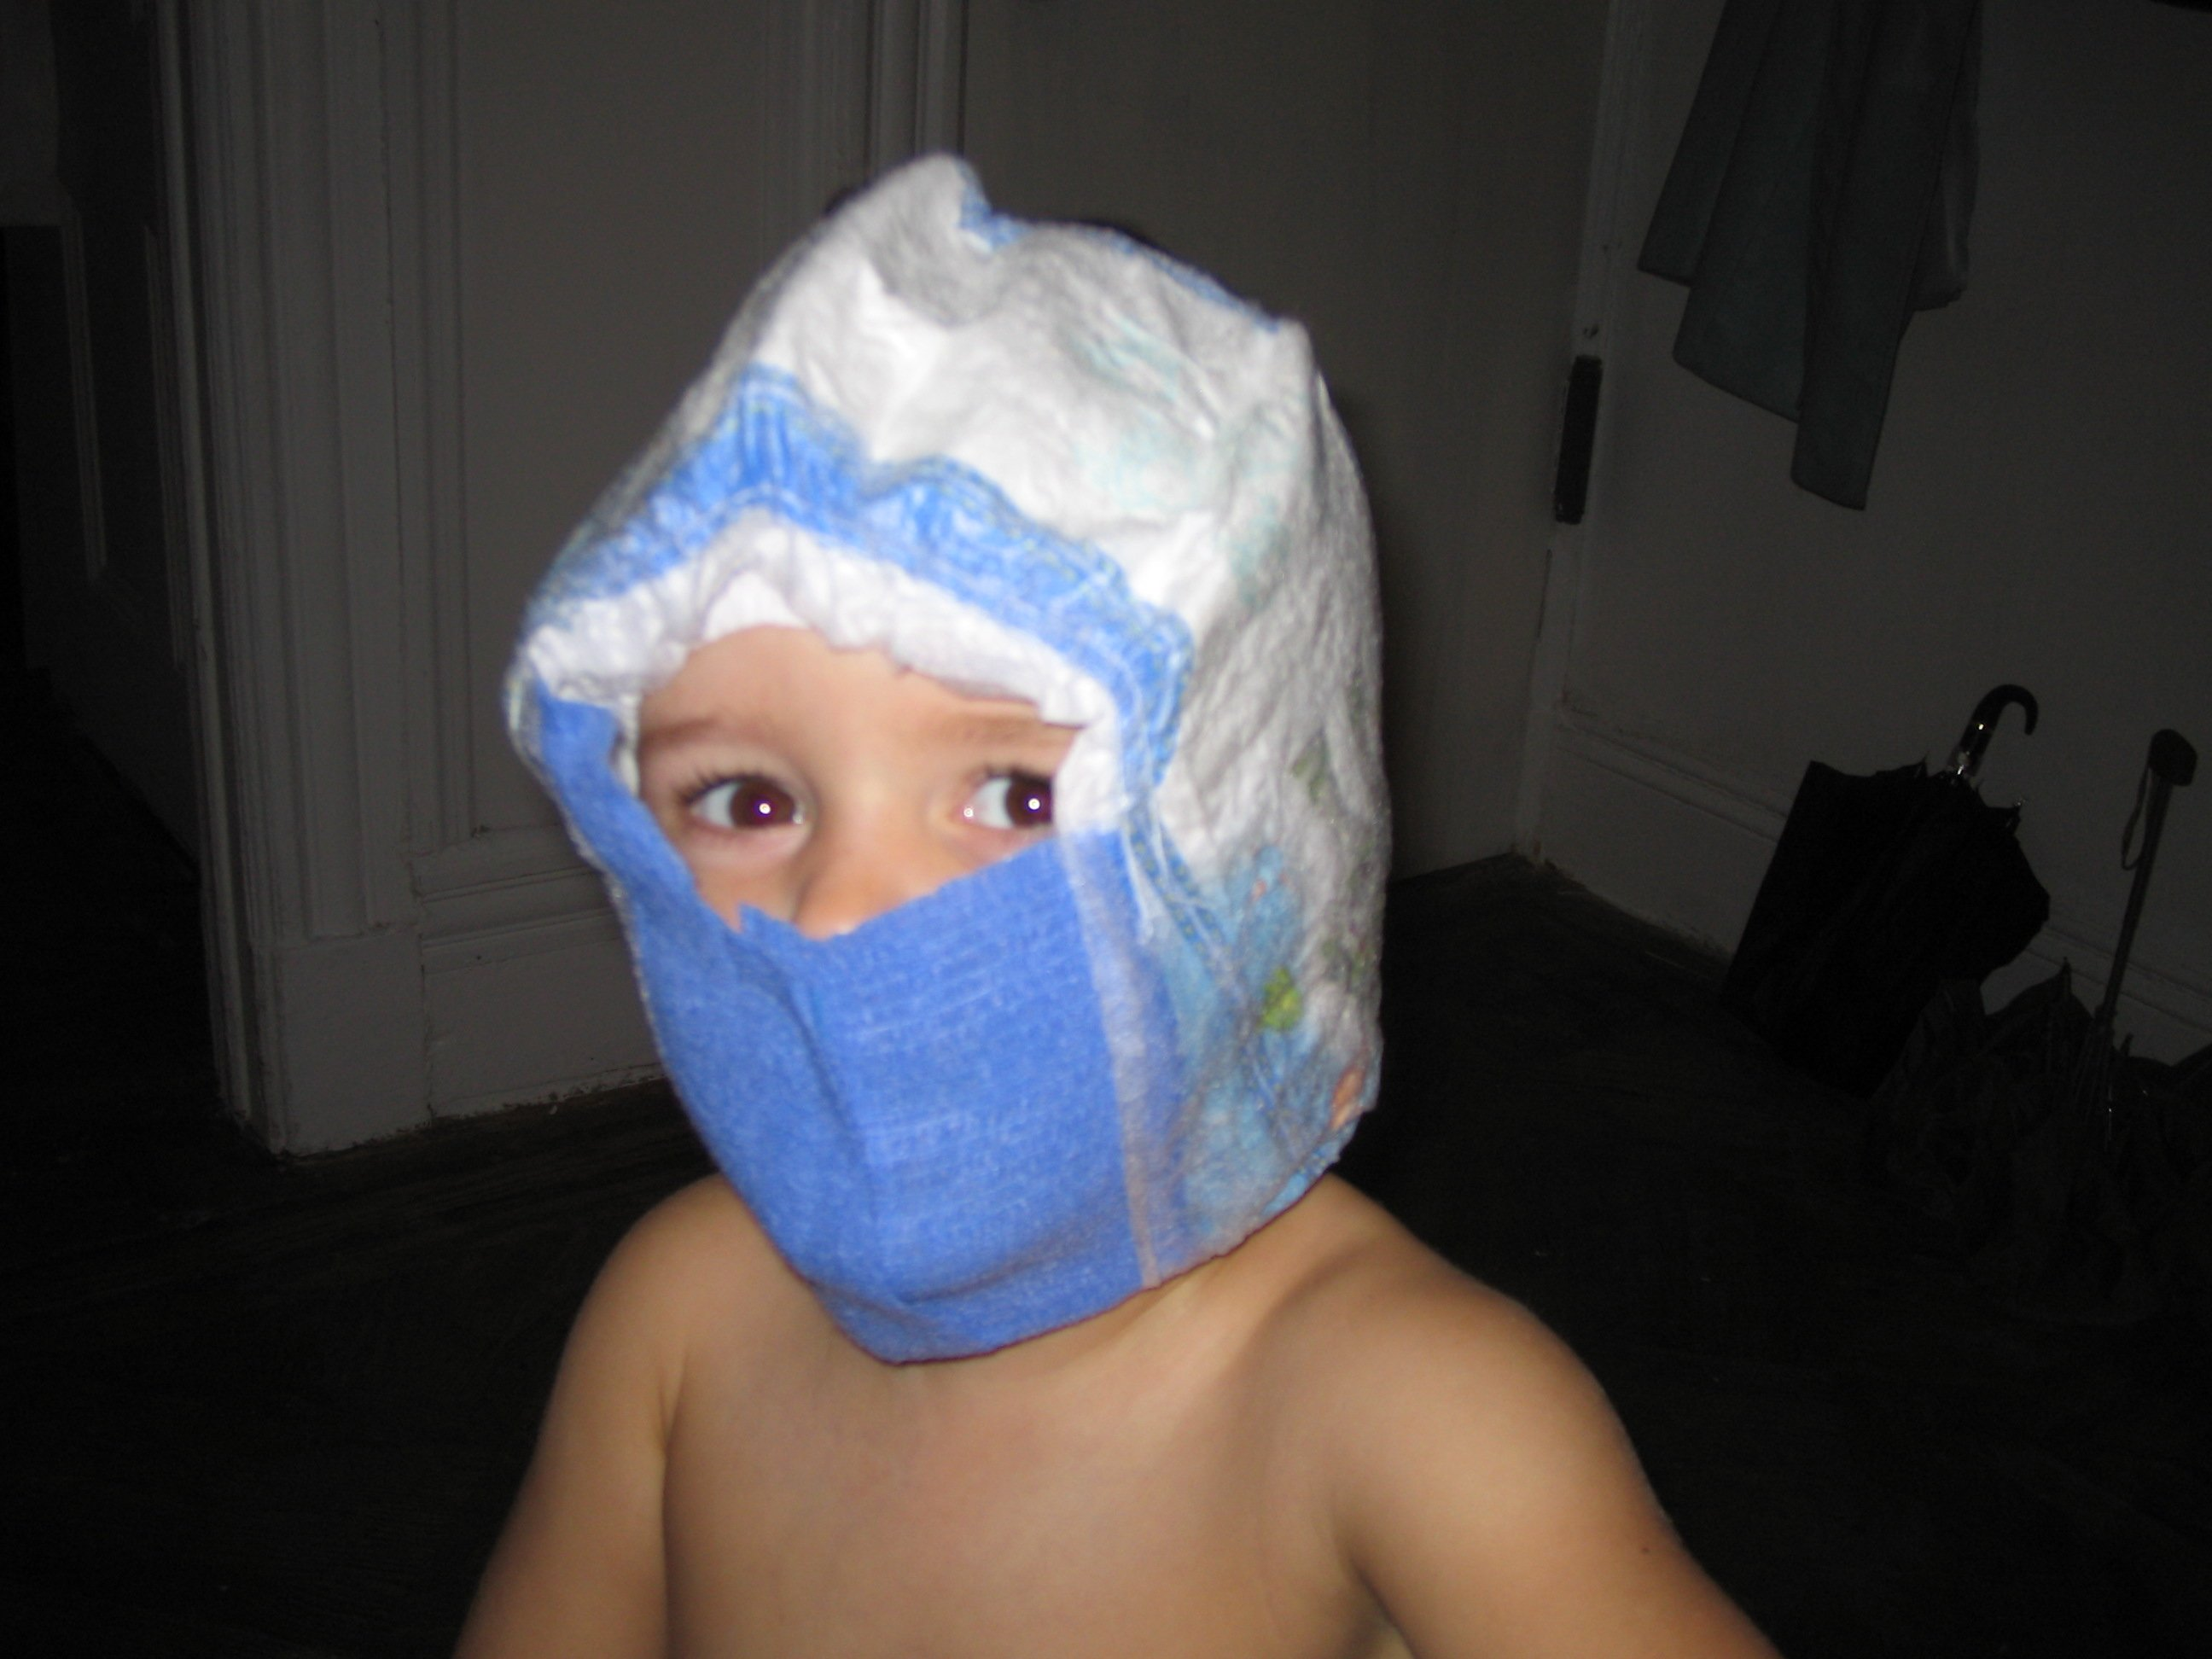 In a pinch, diapers can also be used as a subsitute for a Sub Zero mask.